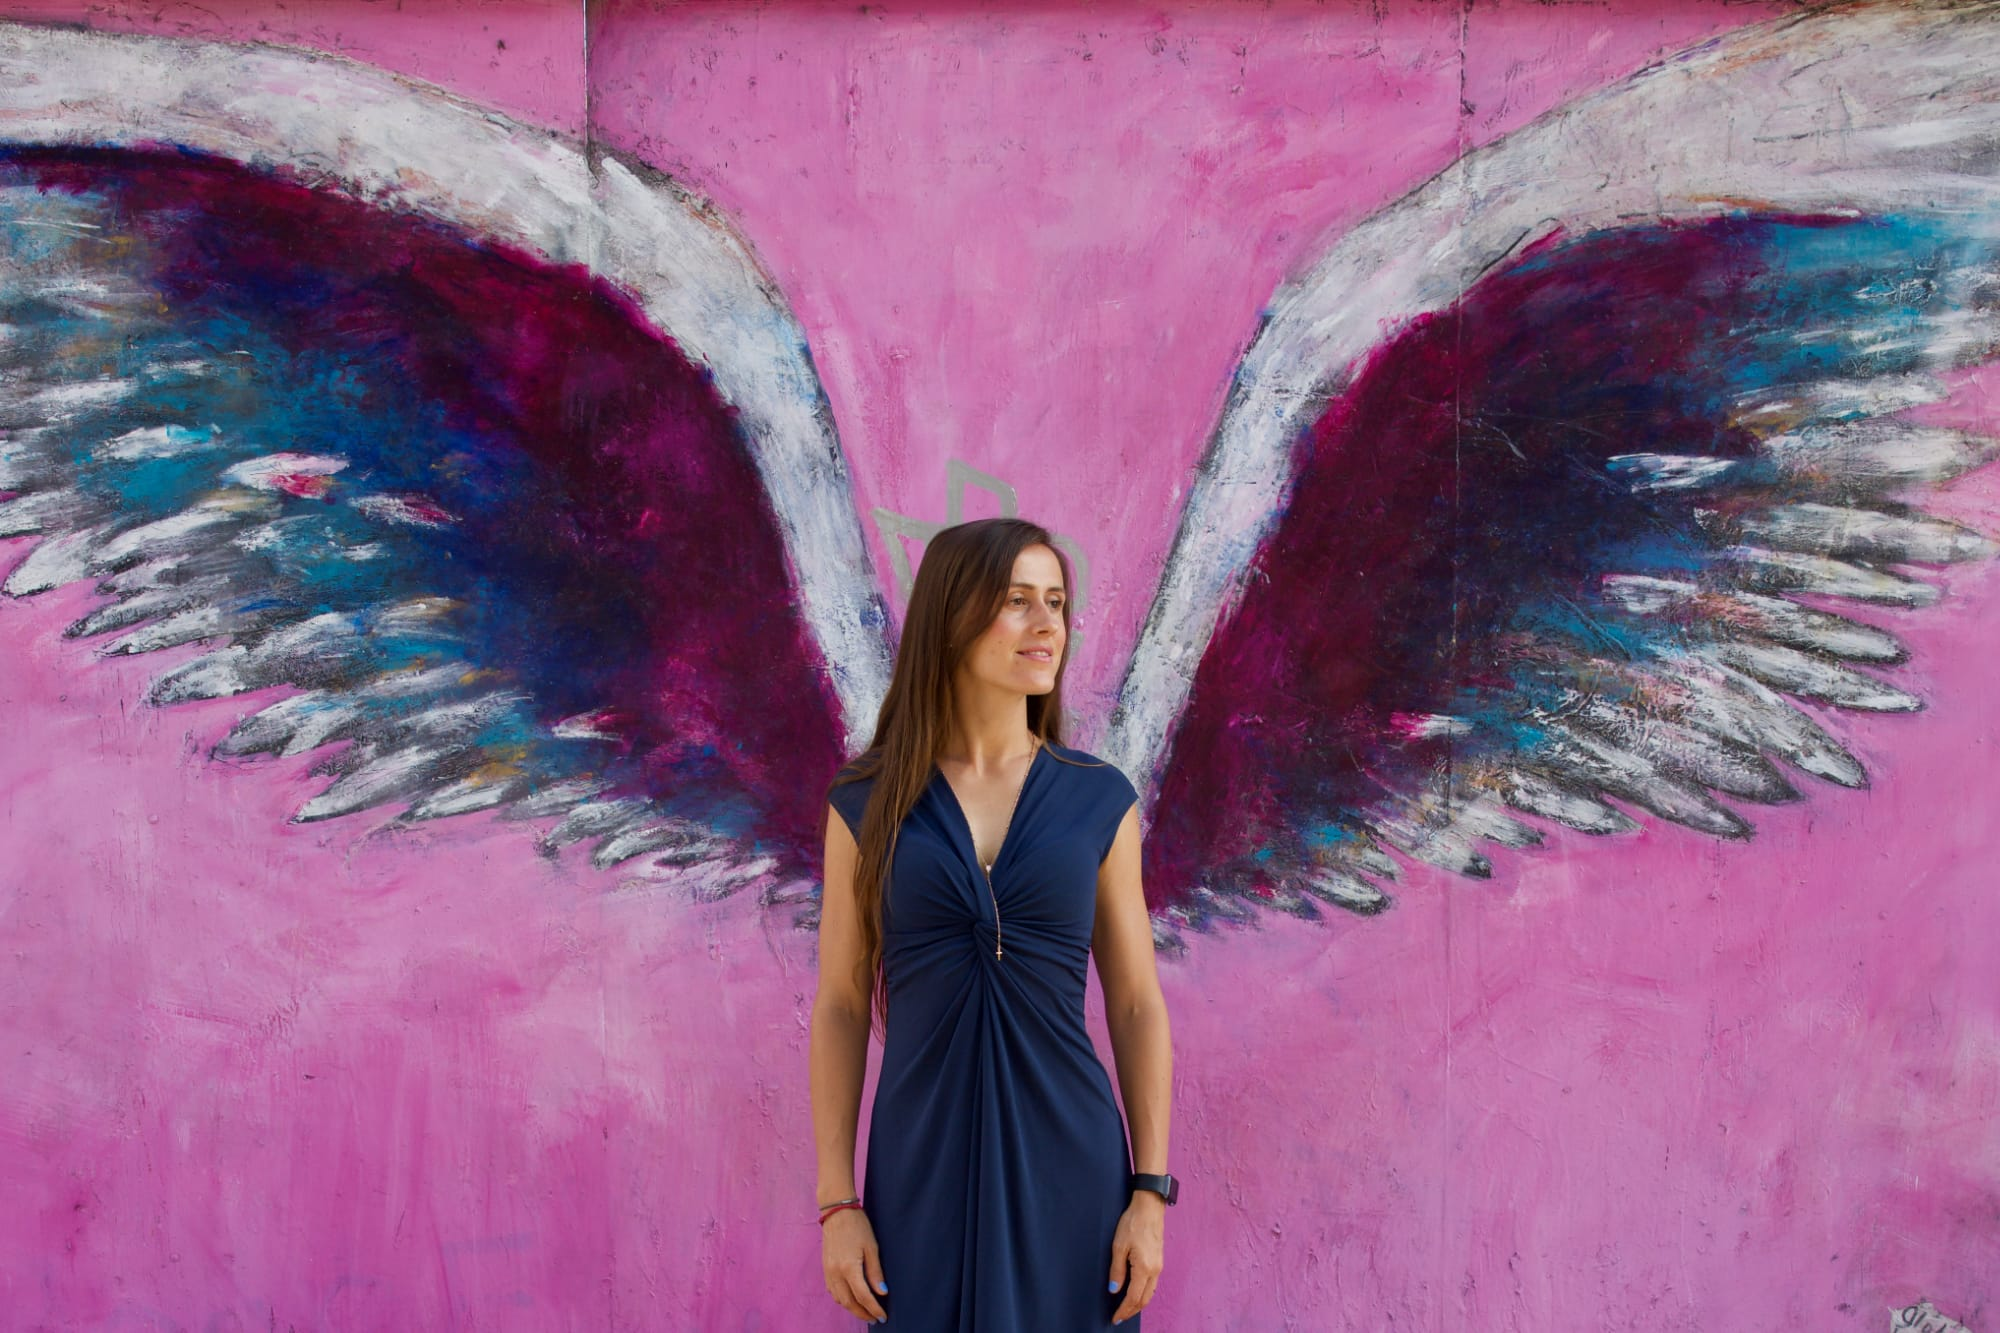 The Global Angel Wings Project di Colette Miller